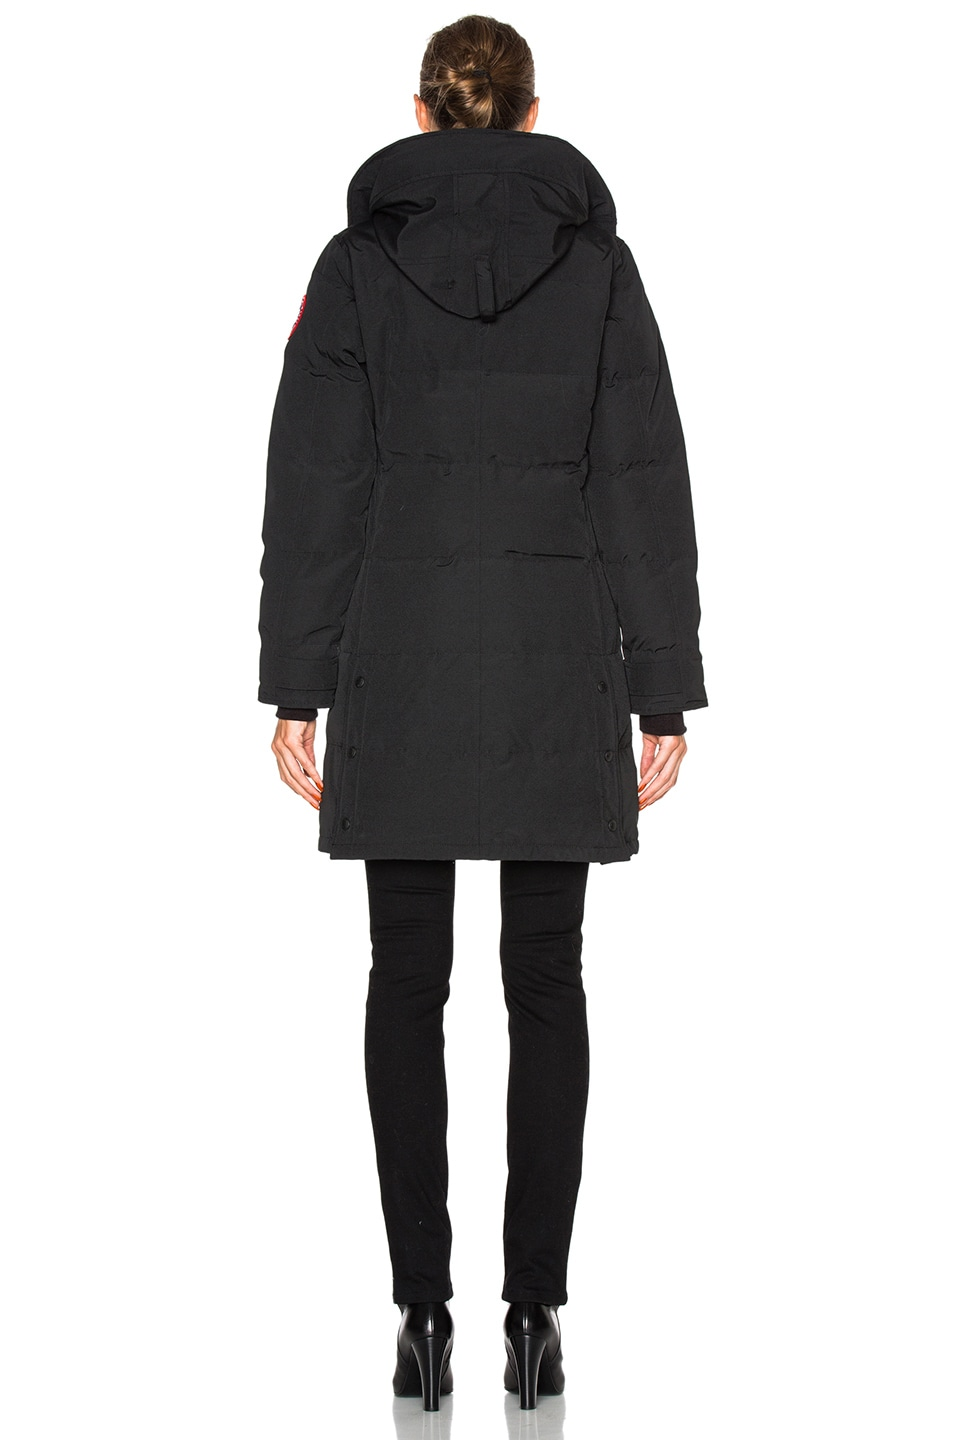 Image 5 of Canada Goose Shelburne Parka in Black